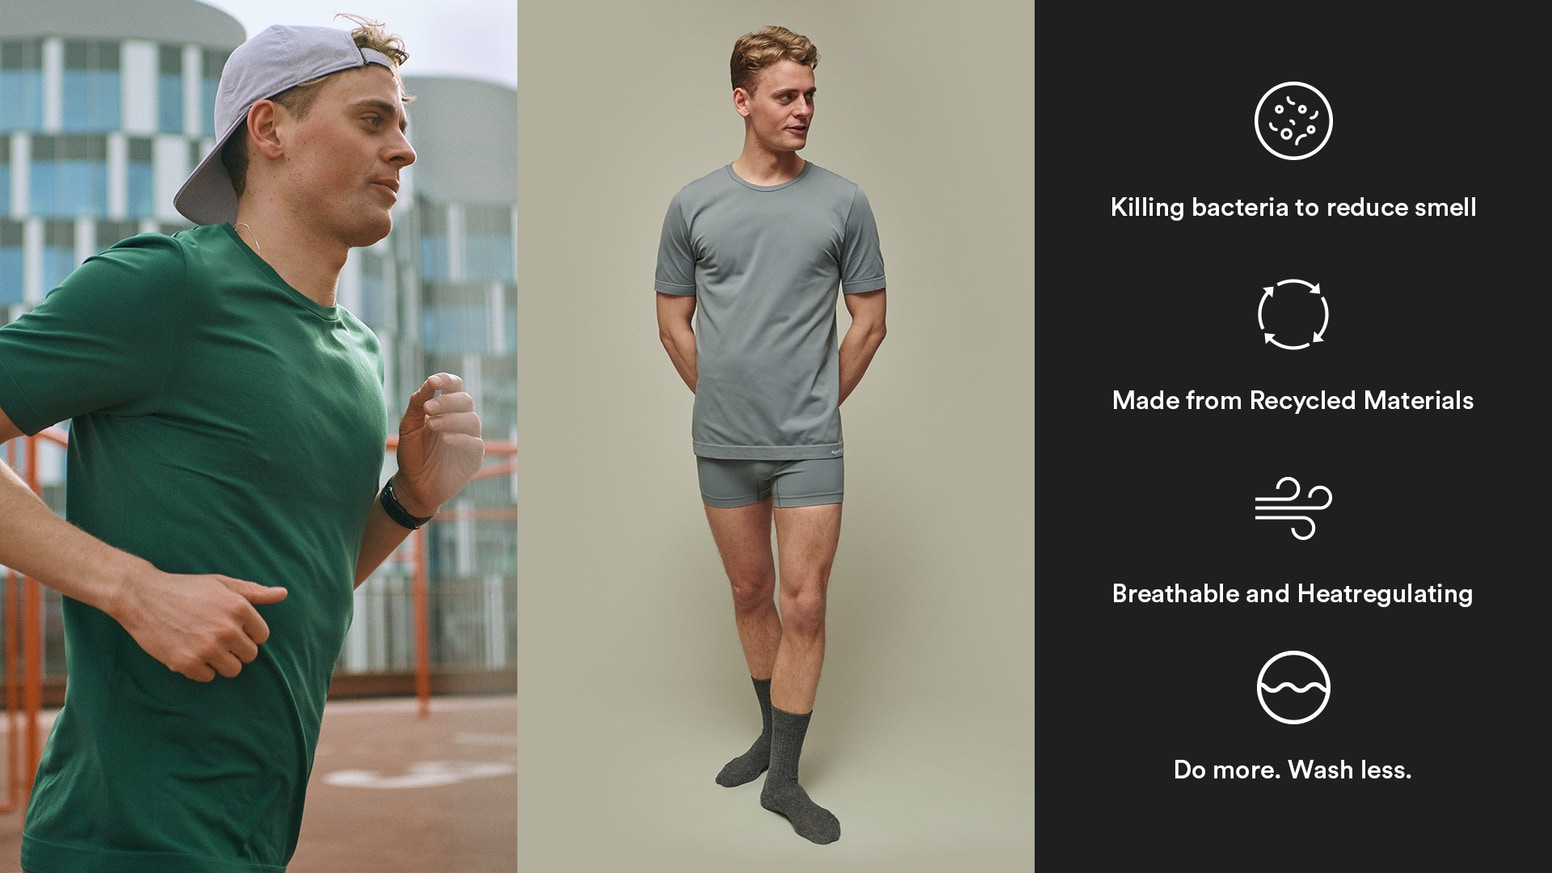 This Tech-Advanced Underwear is Durable, Comfortable, Odor-Killing, Affordable & Made from 100% Sustainable Materials.